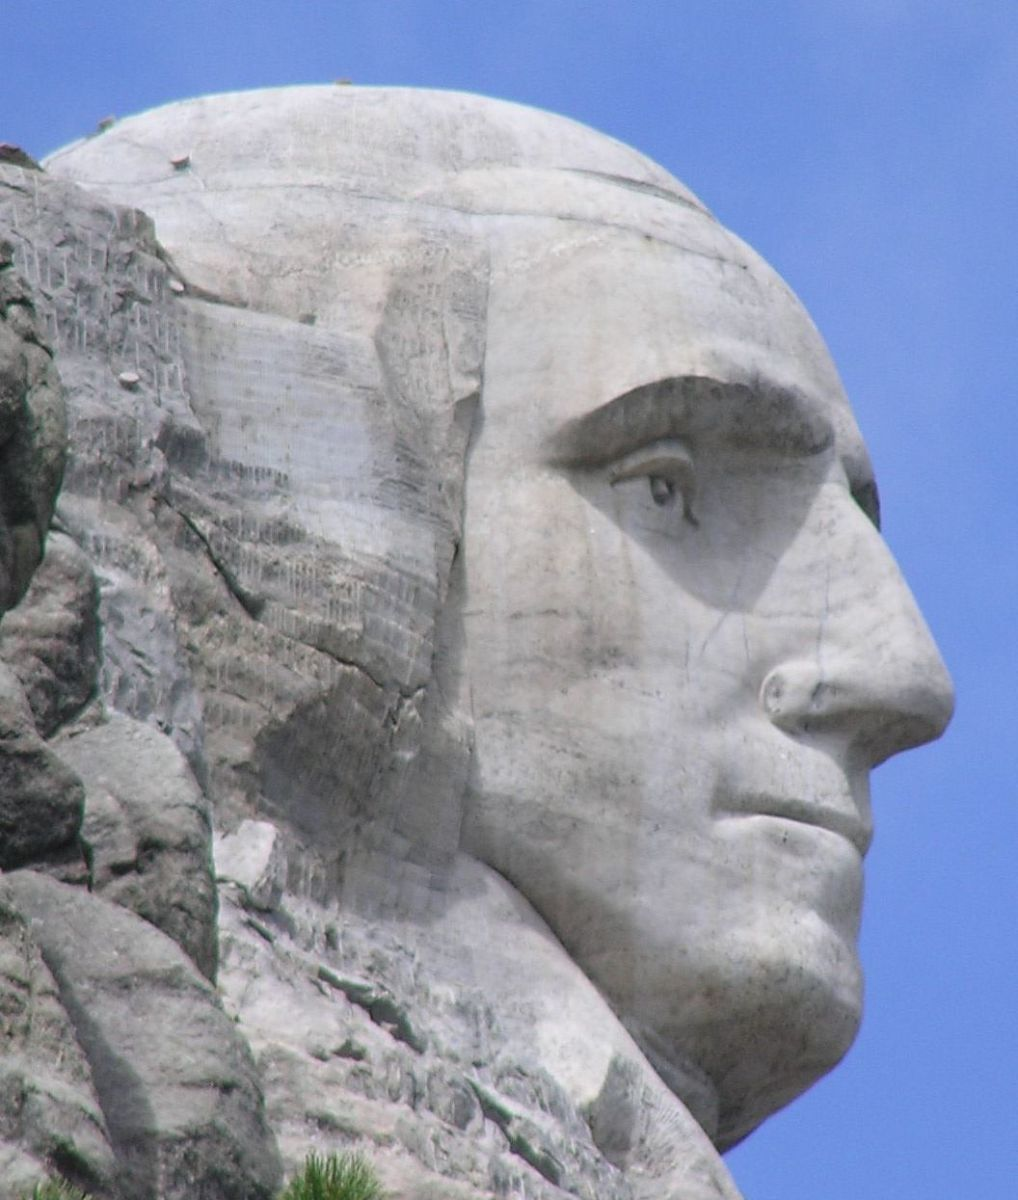 George Washington is so revered, he is one of the Presidents shown on Mount Rushmore.